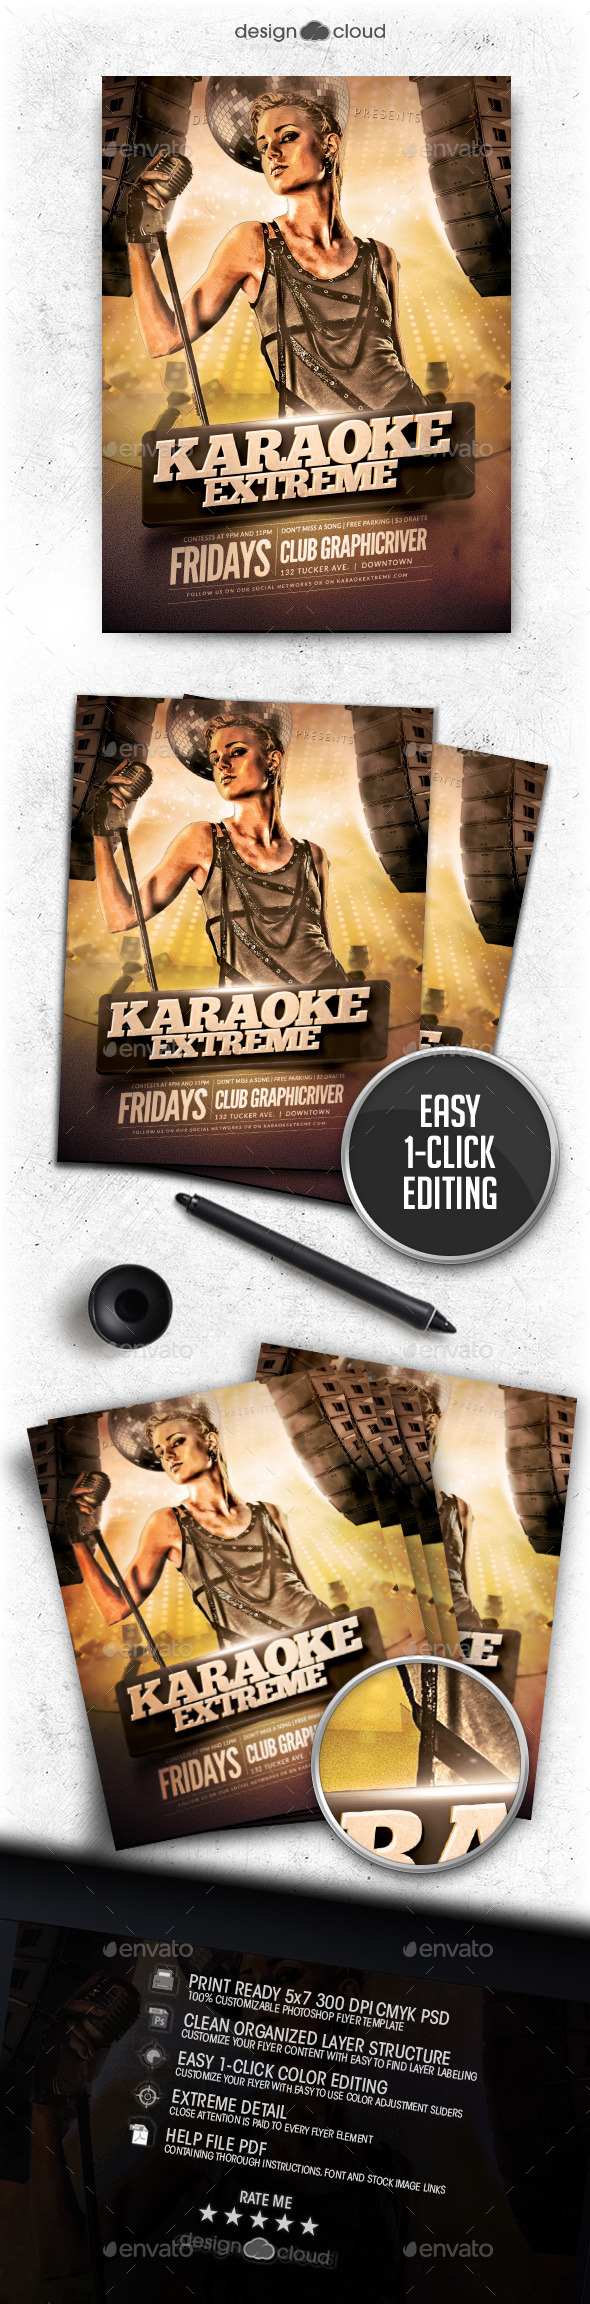 GraphicRiver Karaoke Extreme Flyer Template 11870450